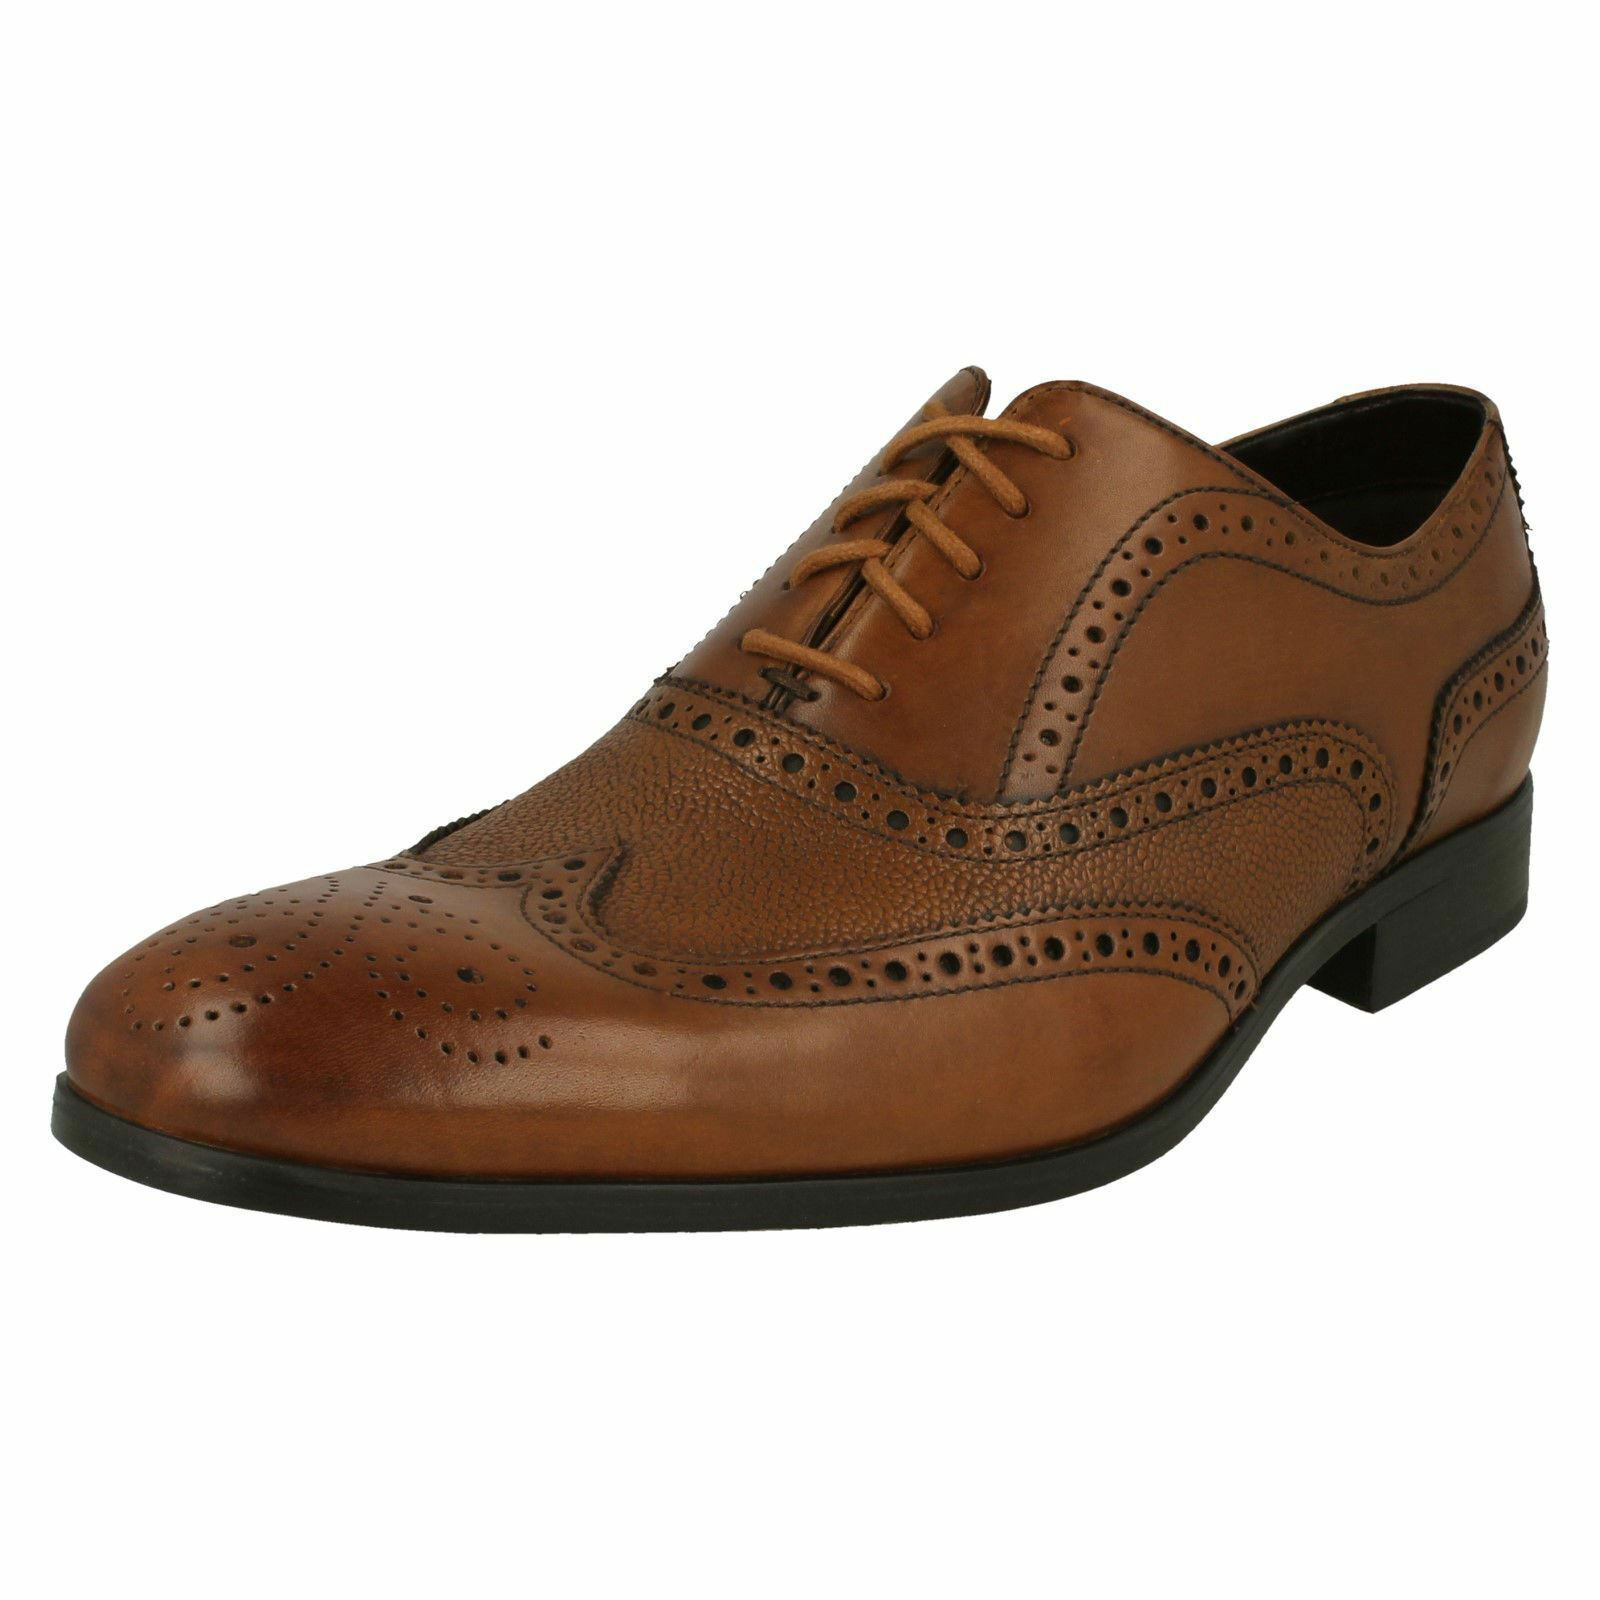 CLARKS Gilmore Limit Mens Tan Leather Brogue Lace Up shoes